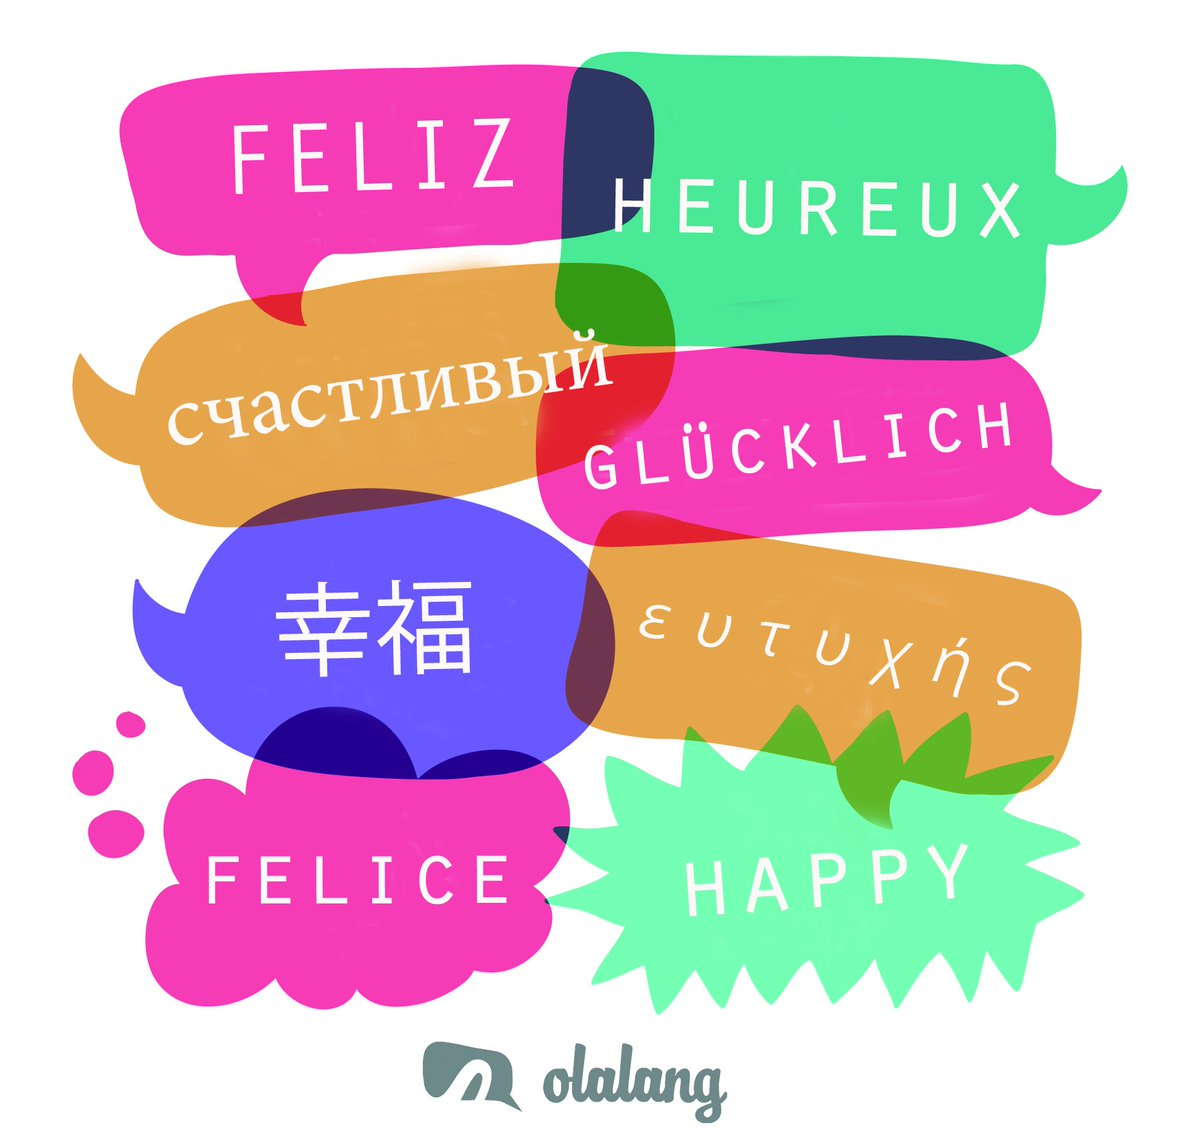 In #2017, add this word to your vocabulary! Join  http://www. Olalang.com  &nbsp;    #happy #Feliz #Felice #glücklich #Heureux<br>http://pic.twitter.com/r4aB1e6xNI